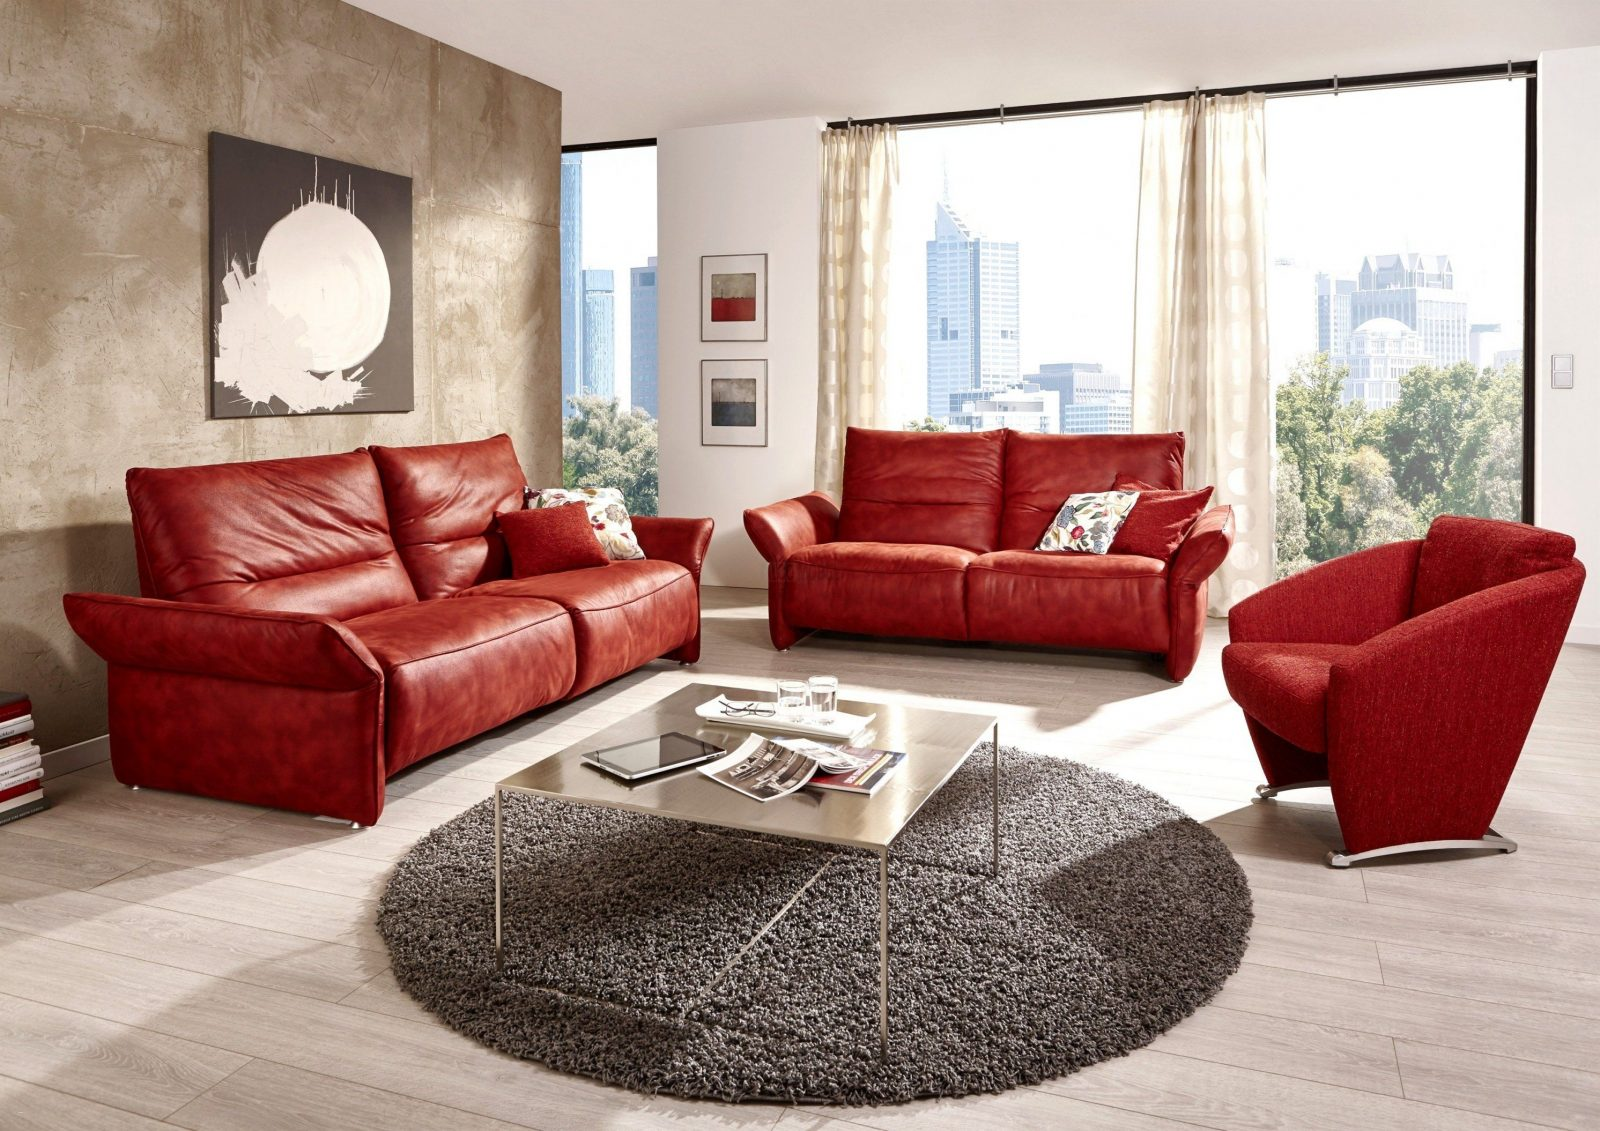 Rote couch welche wandfarbe haus design ideen - Rote wandfarbe ...